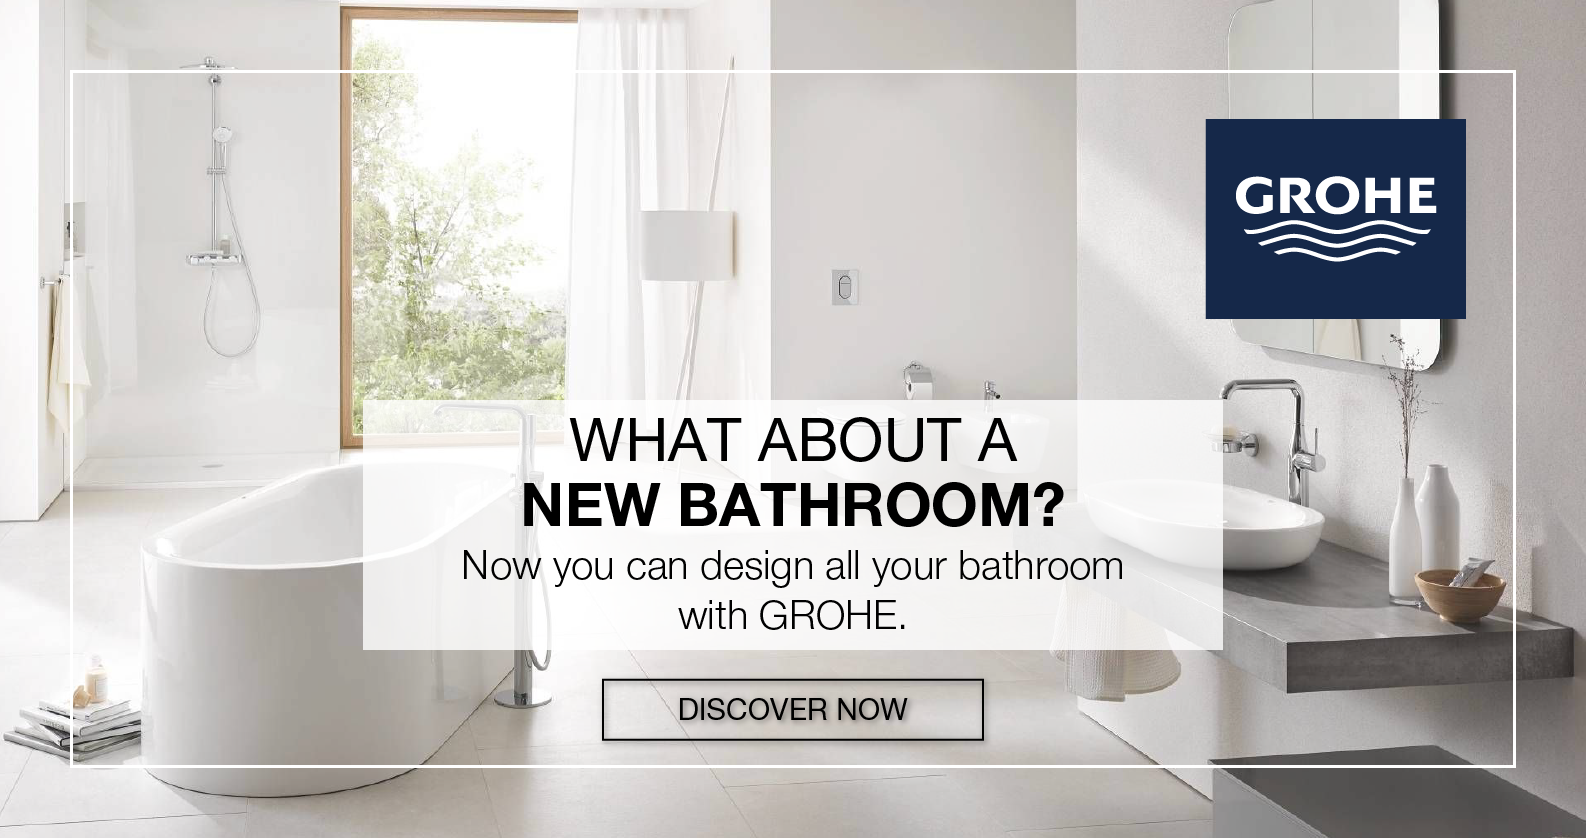 Discover everything for the bathroom from GROHE at xTWOstore